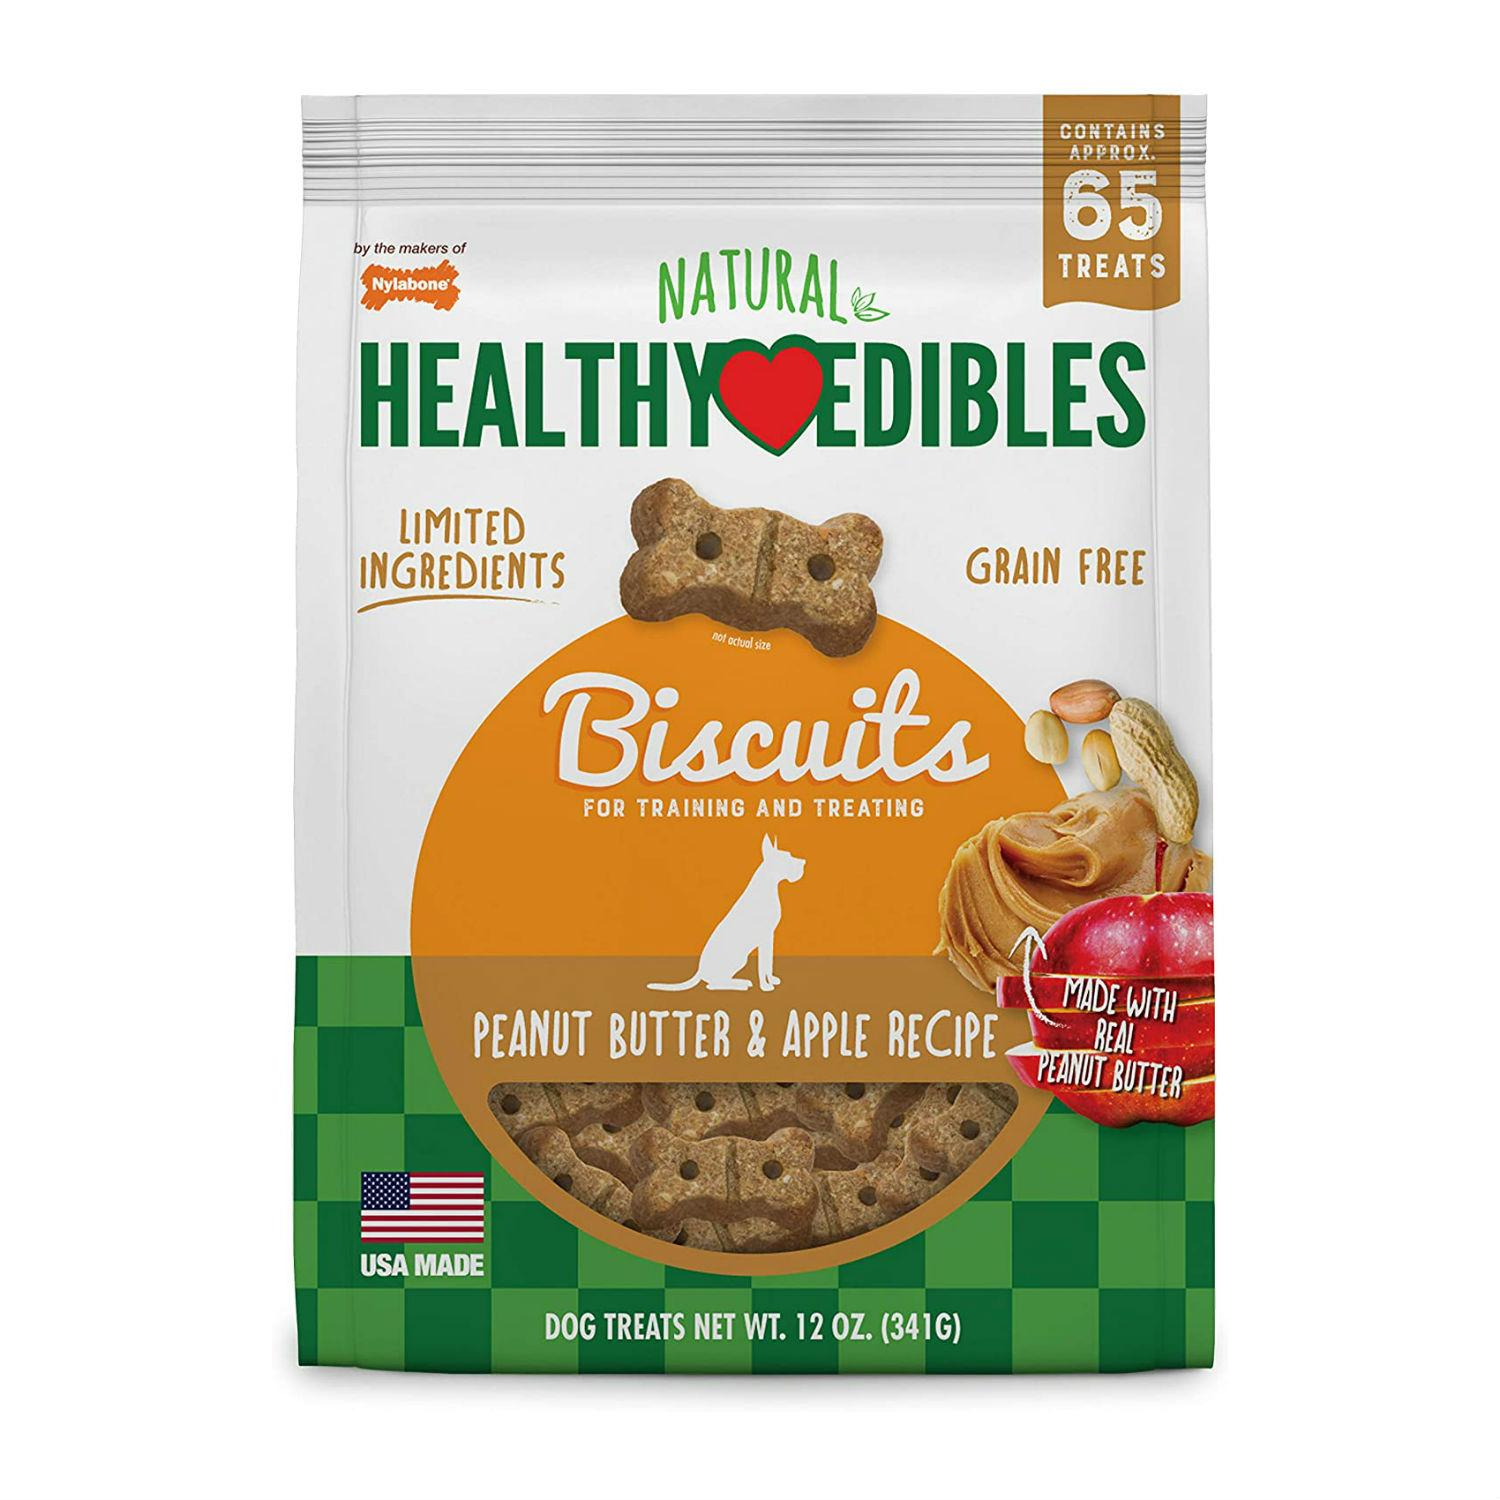 Nylabone Healthy Edibles Biscuits Grain Free Dog Treats - Peanut Butter & Apple